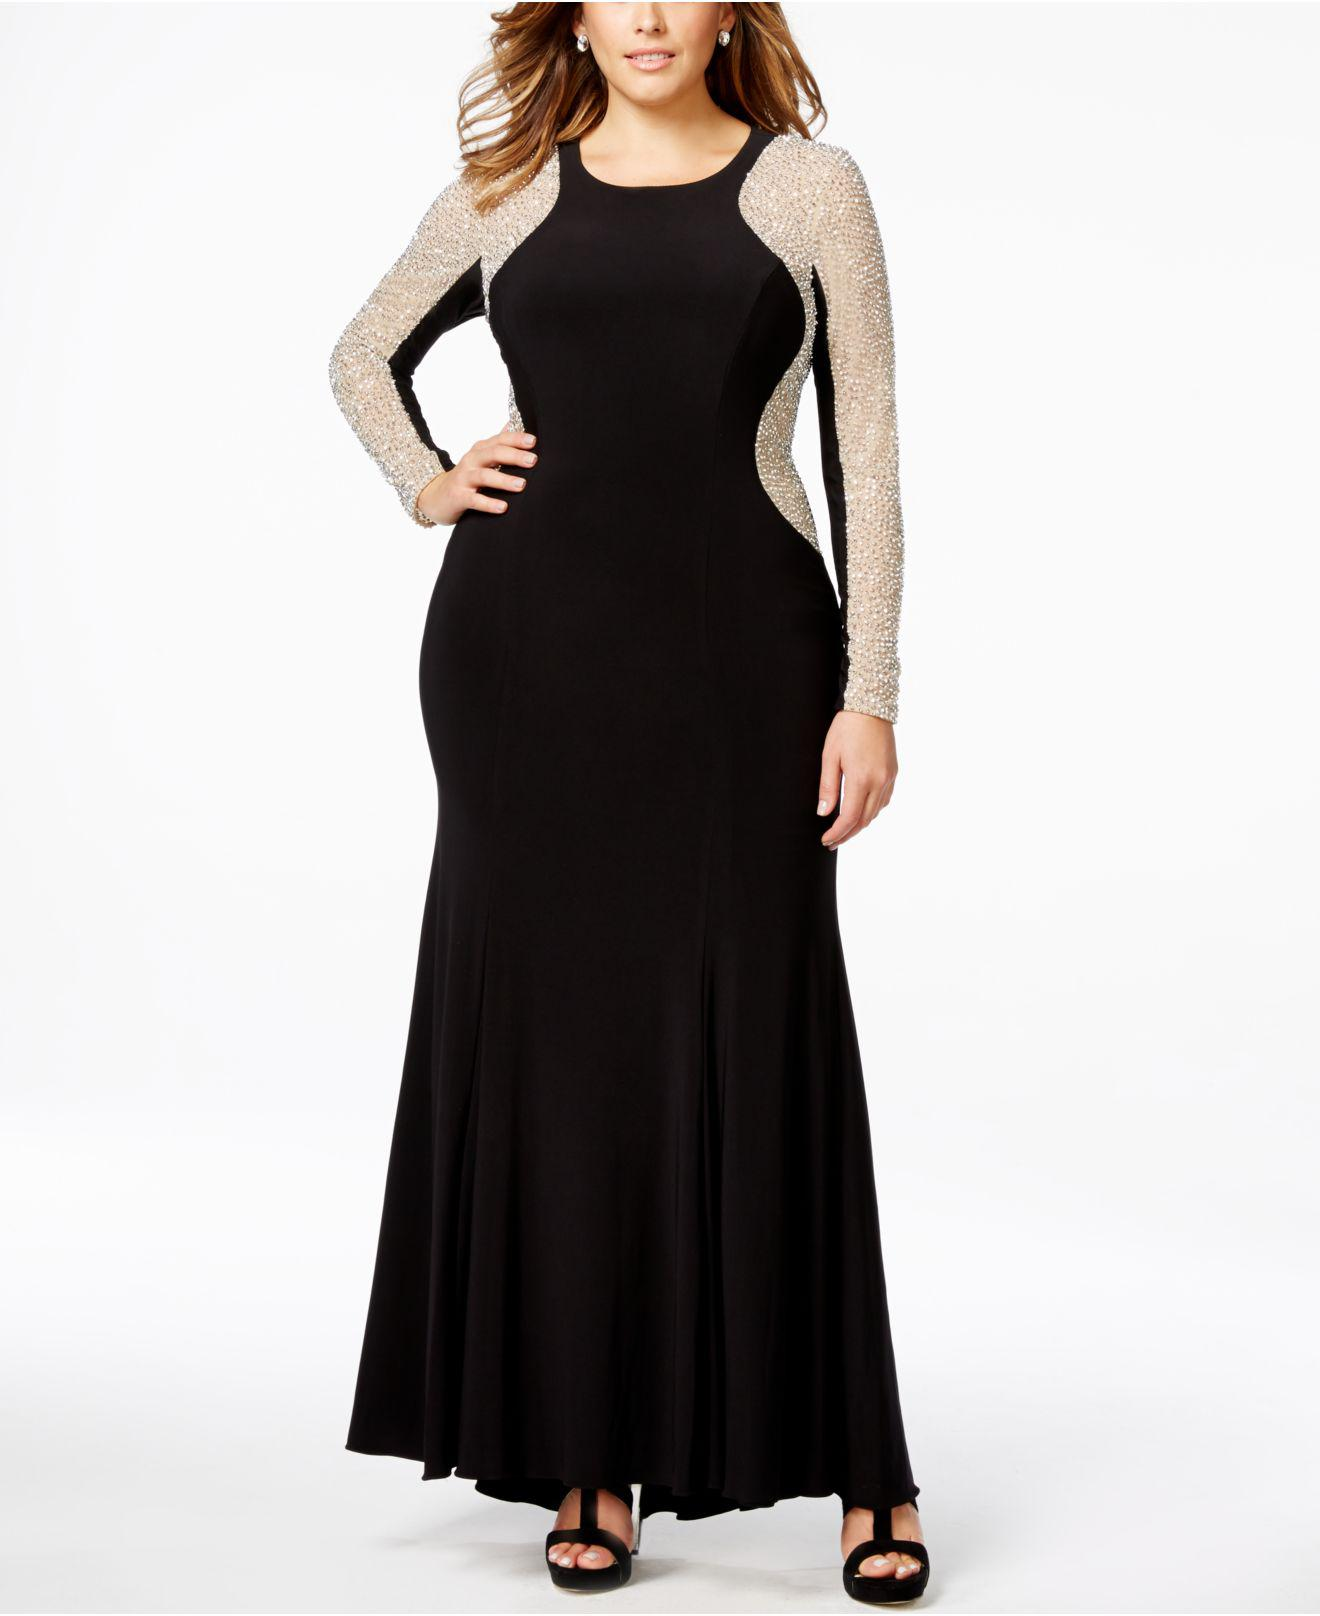 Lyst - Xscape Plus Size Beaded Illusion Hourglass Gown in Black